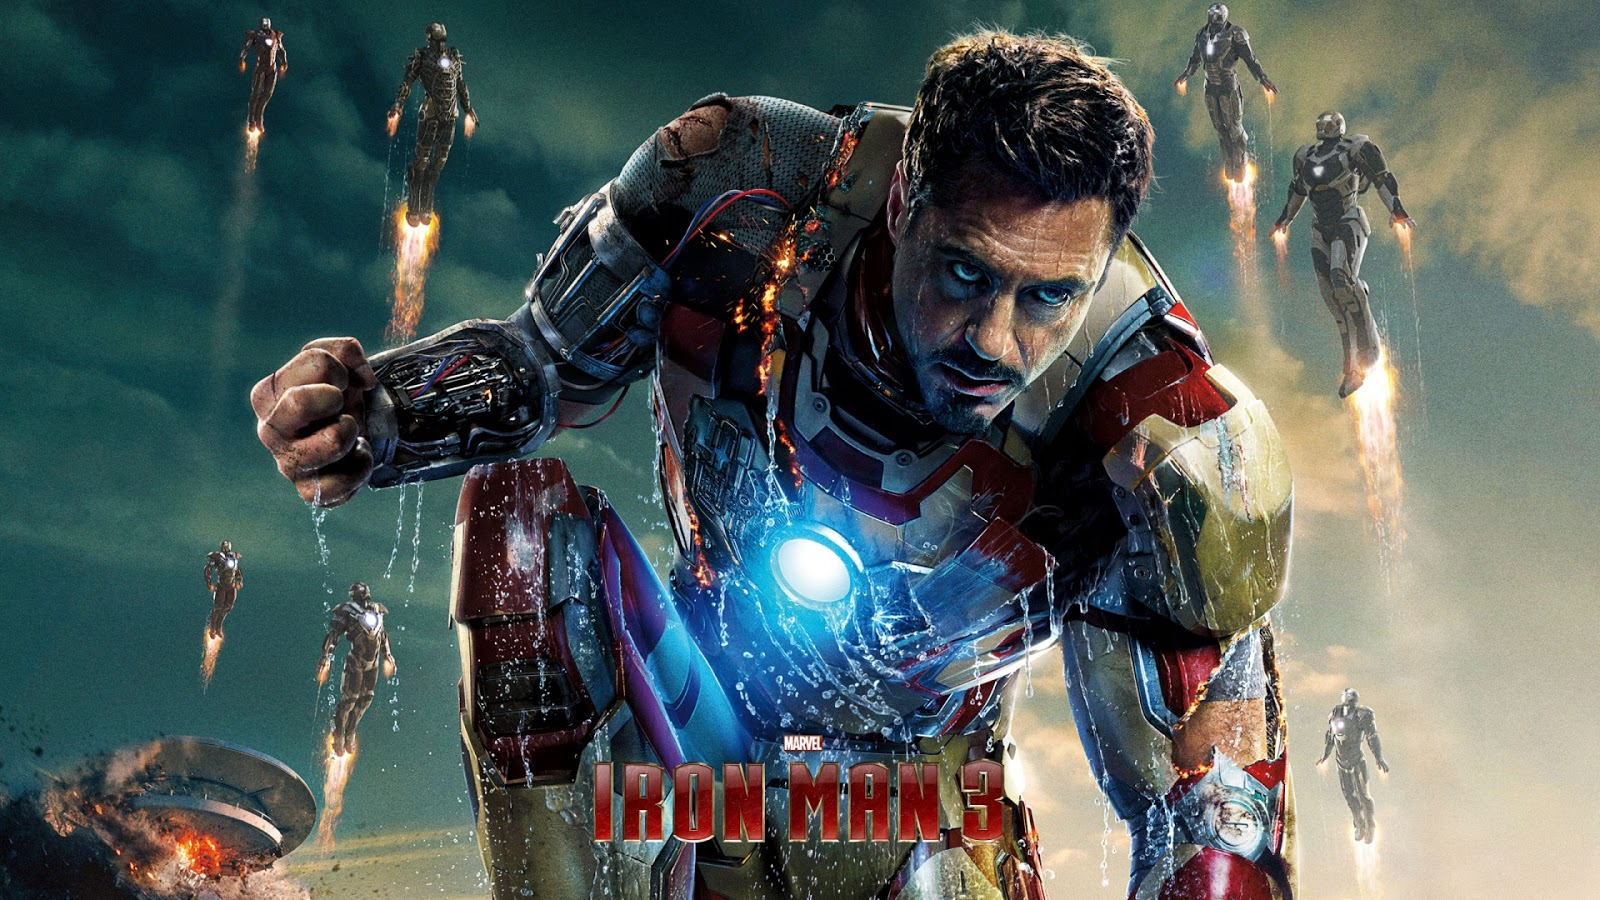 iron man 3 wallpaper hd - wallpapersafari